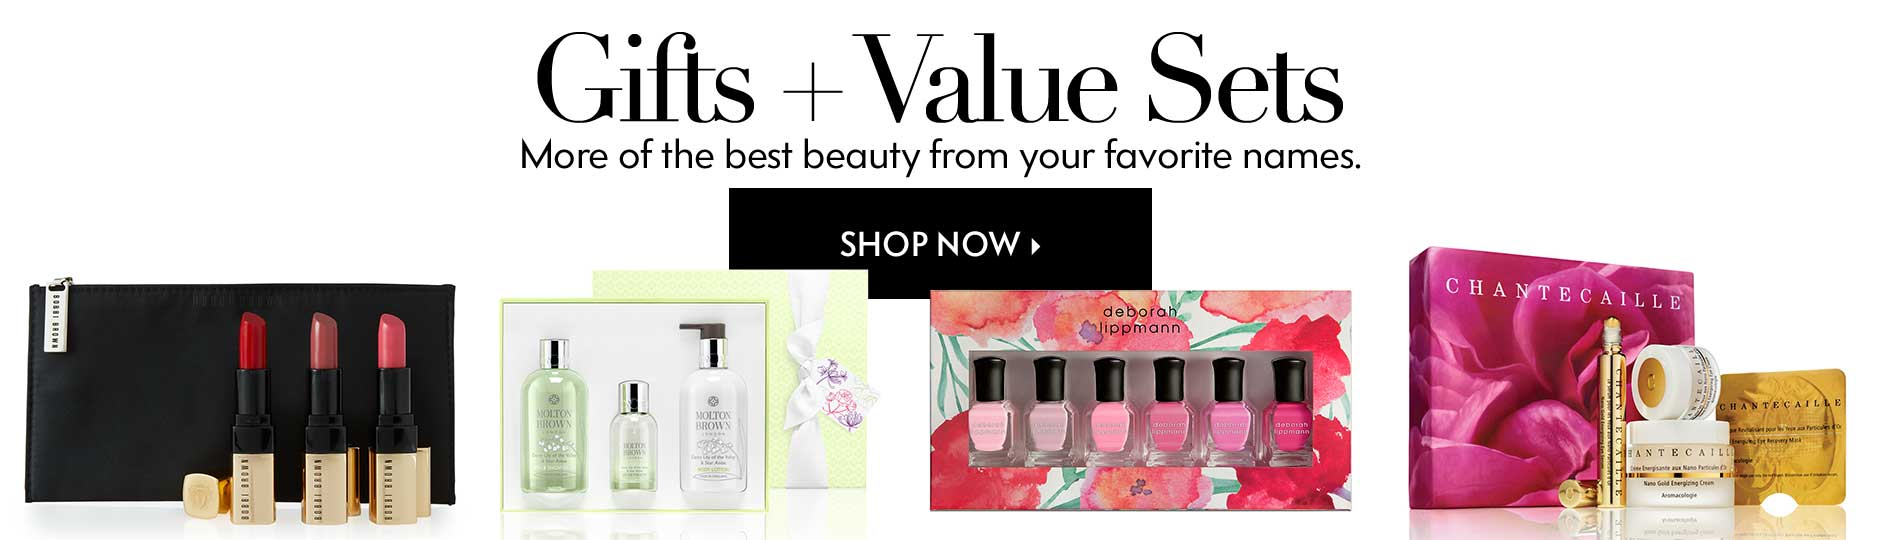 Gifts + Value Sets - More of the best beauty from your favorite names.